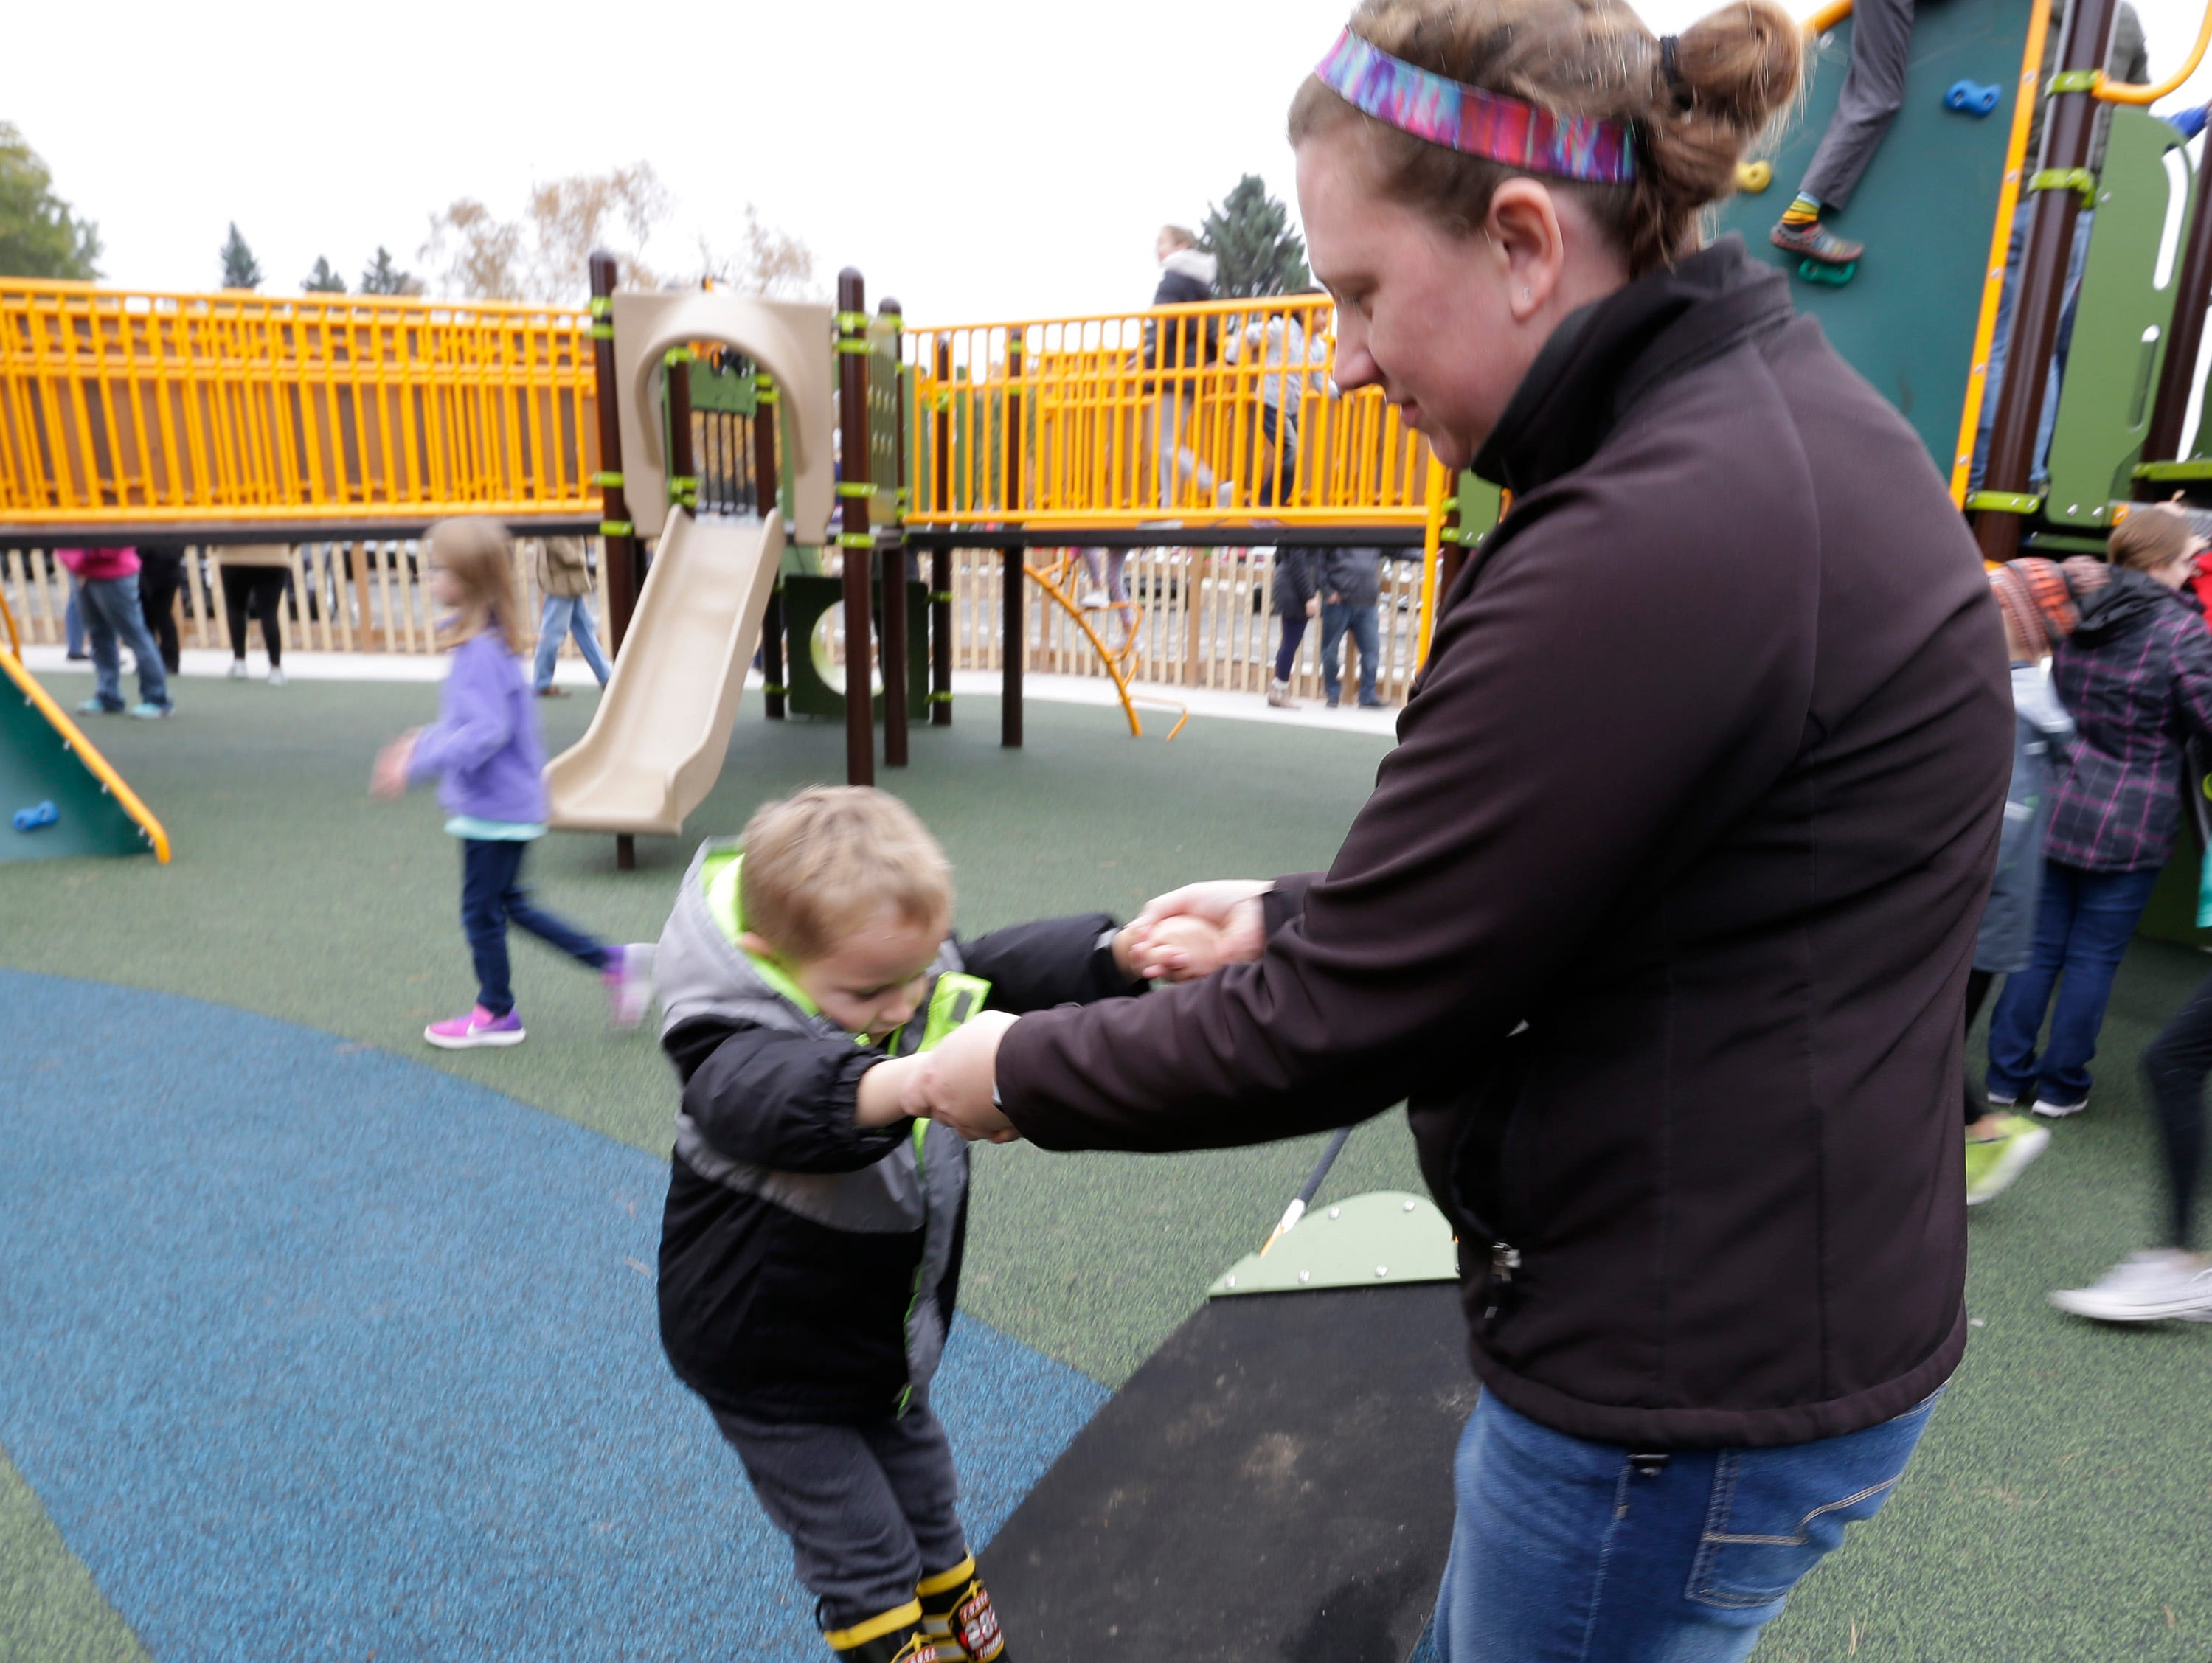 Avery Ponath, 4, is helped by his mom Jennifer on a piece of playground gear at the Shaw Family Playground, Saturday, September 27, 2018, in Sheboygan, Wis. The playground held a ribbon cutting event to showcase the adaptive playground that is accessible for children of all physical abilities.